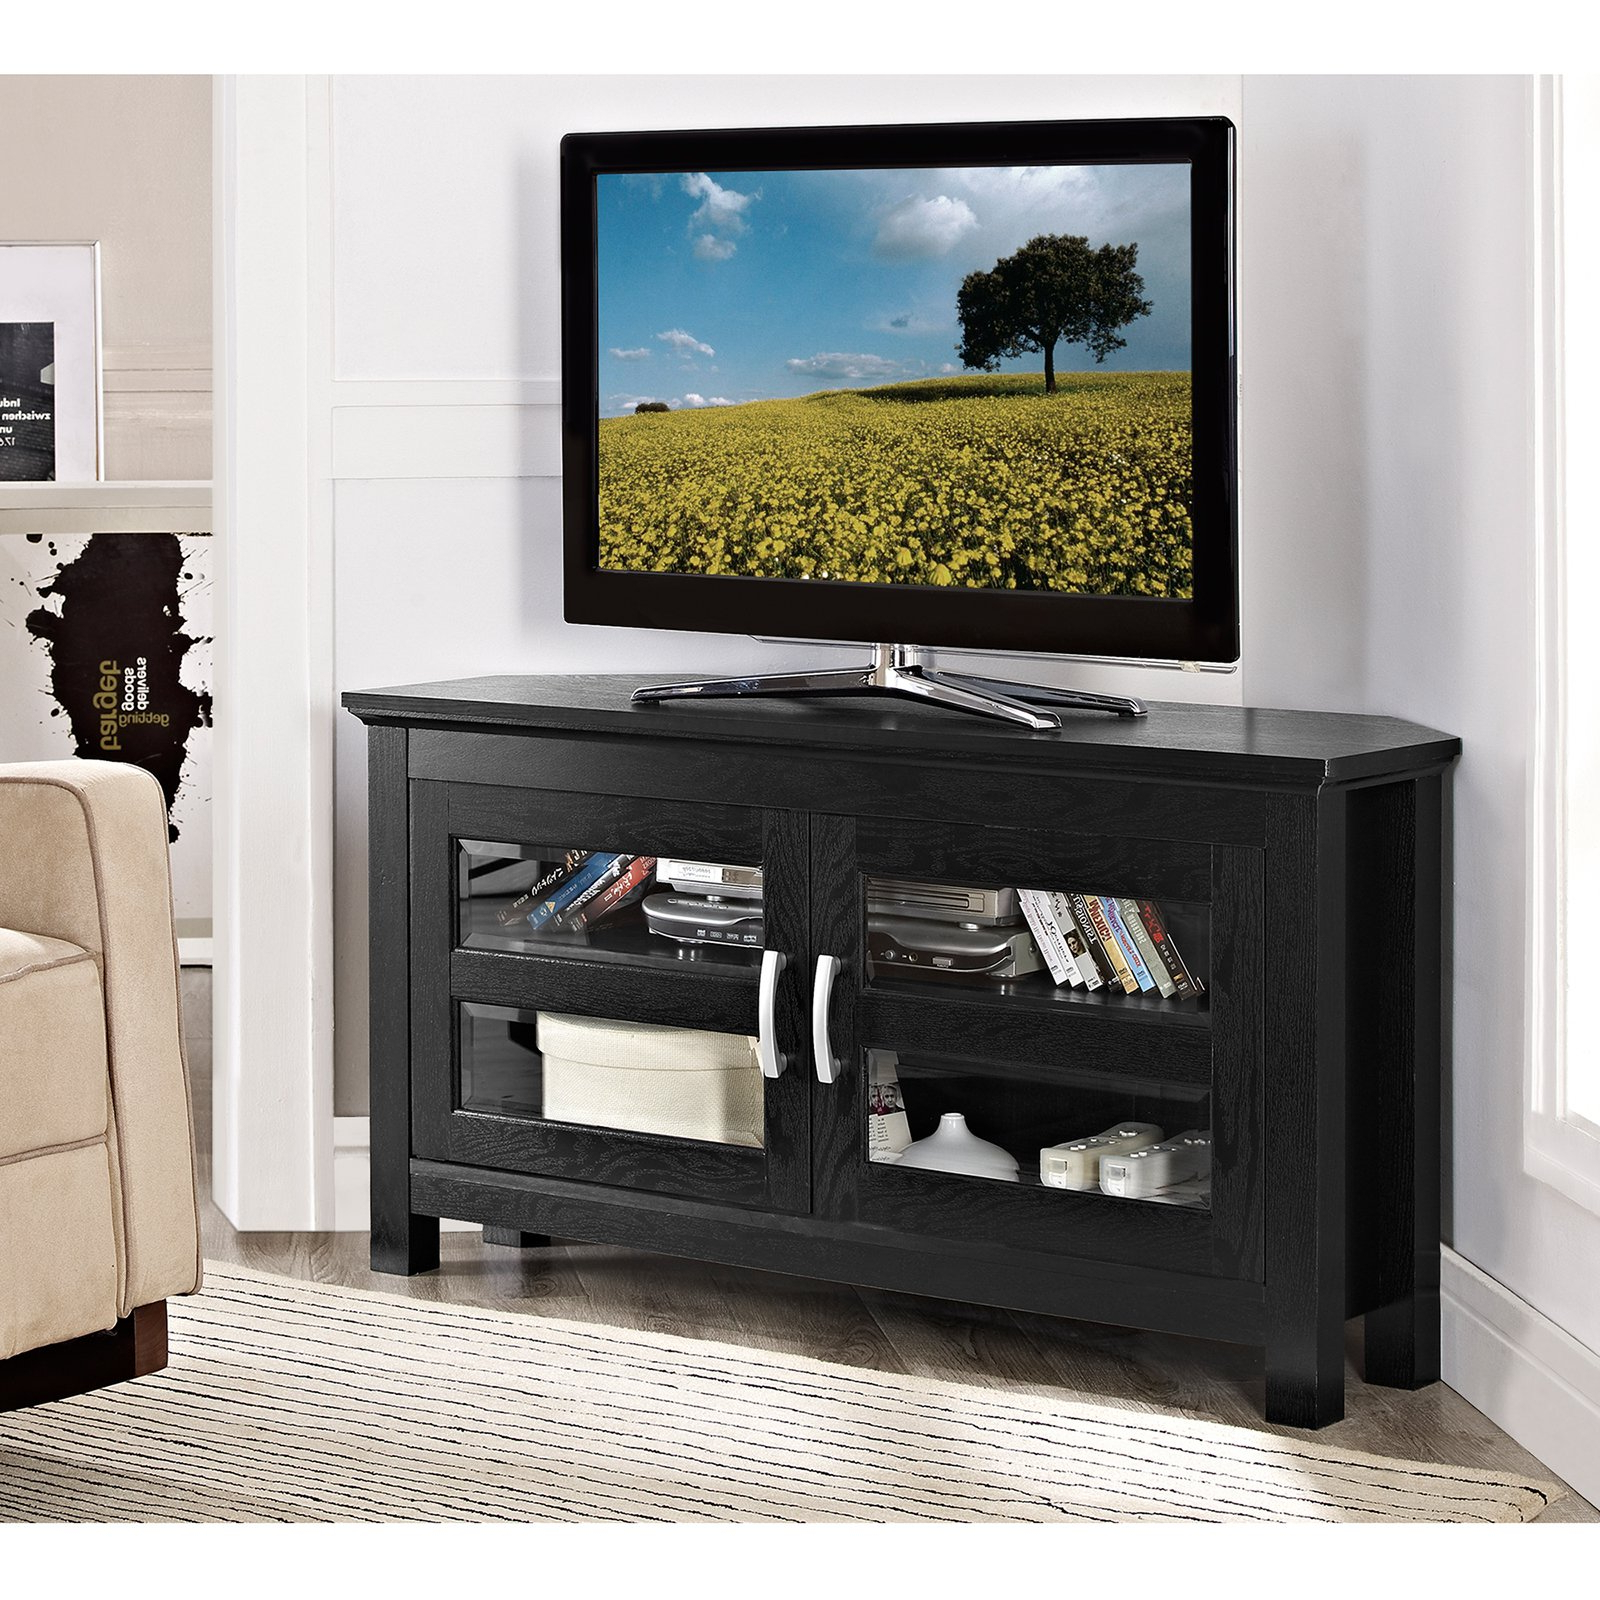 Most Popular Black Corner Tv Stands For Tvs Up To 60 Pertaining To Cheap Tv Stand Corner 60 Inch Flat Screen Wood 55 With Mount For (View 12 of 20)